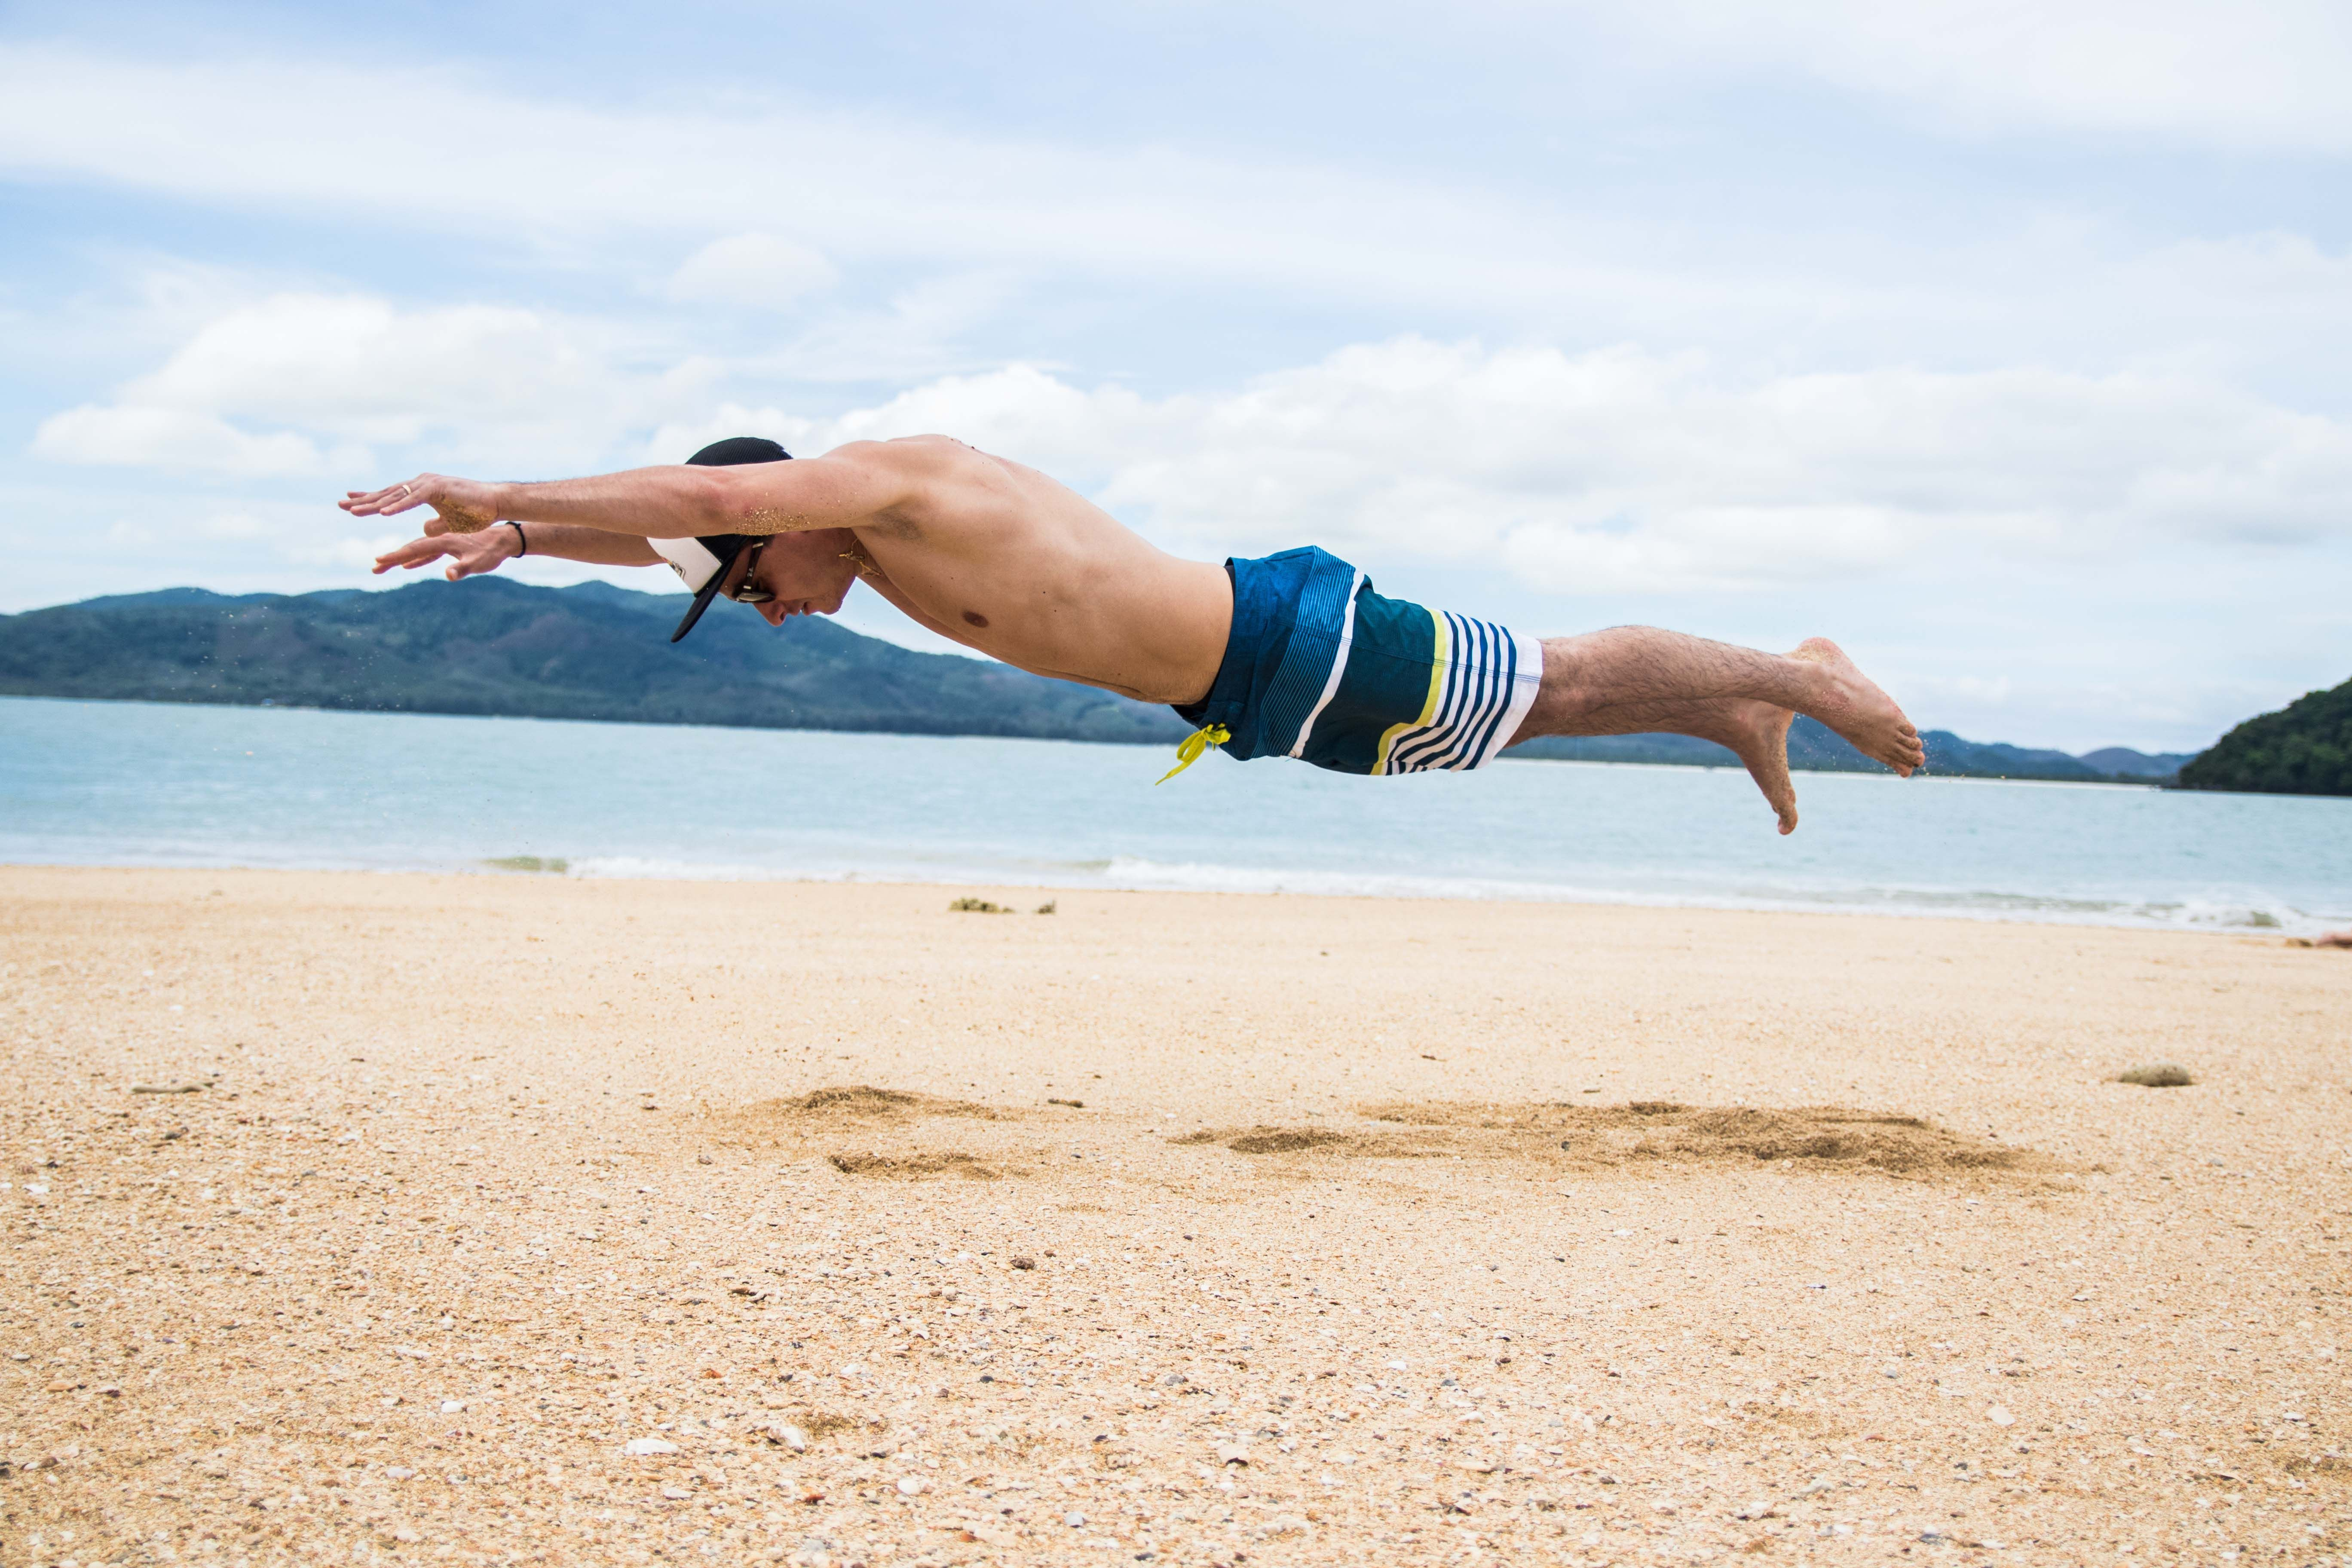 superman flying pushup push up beach